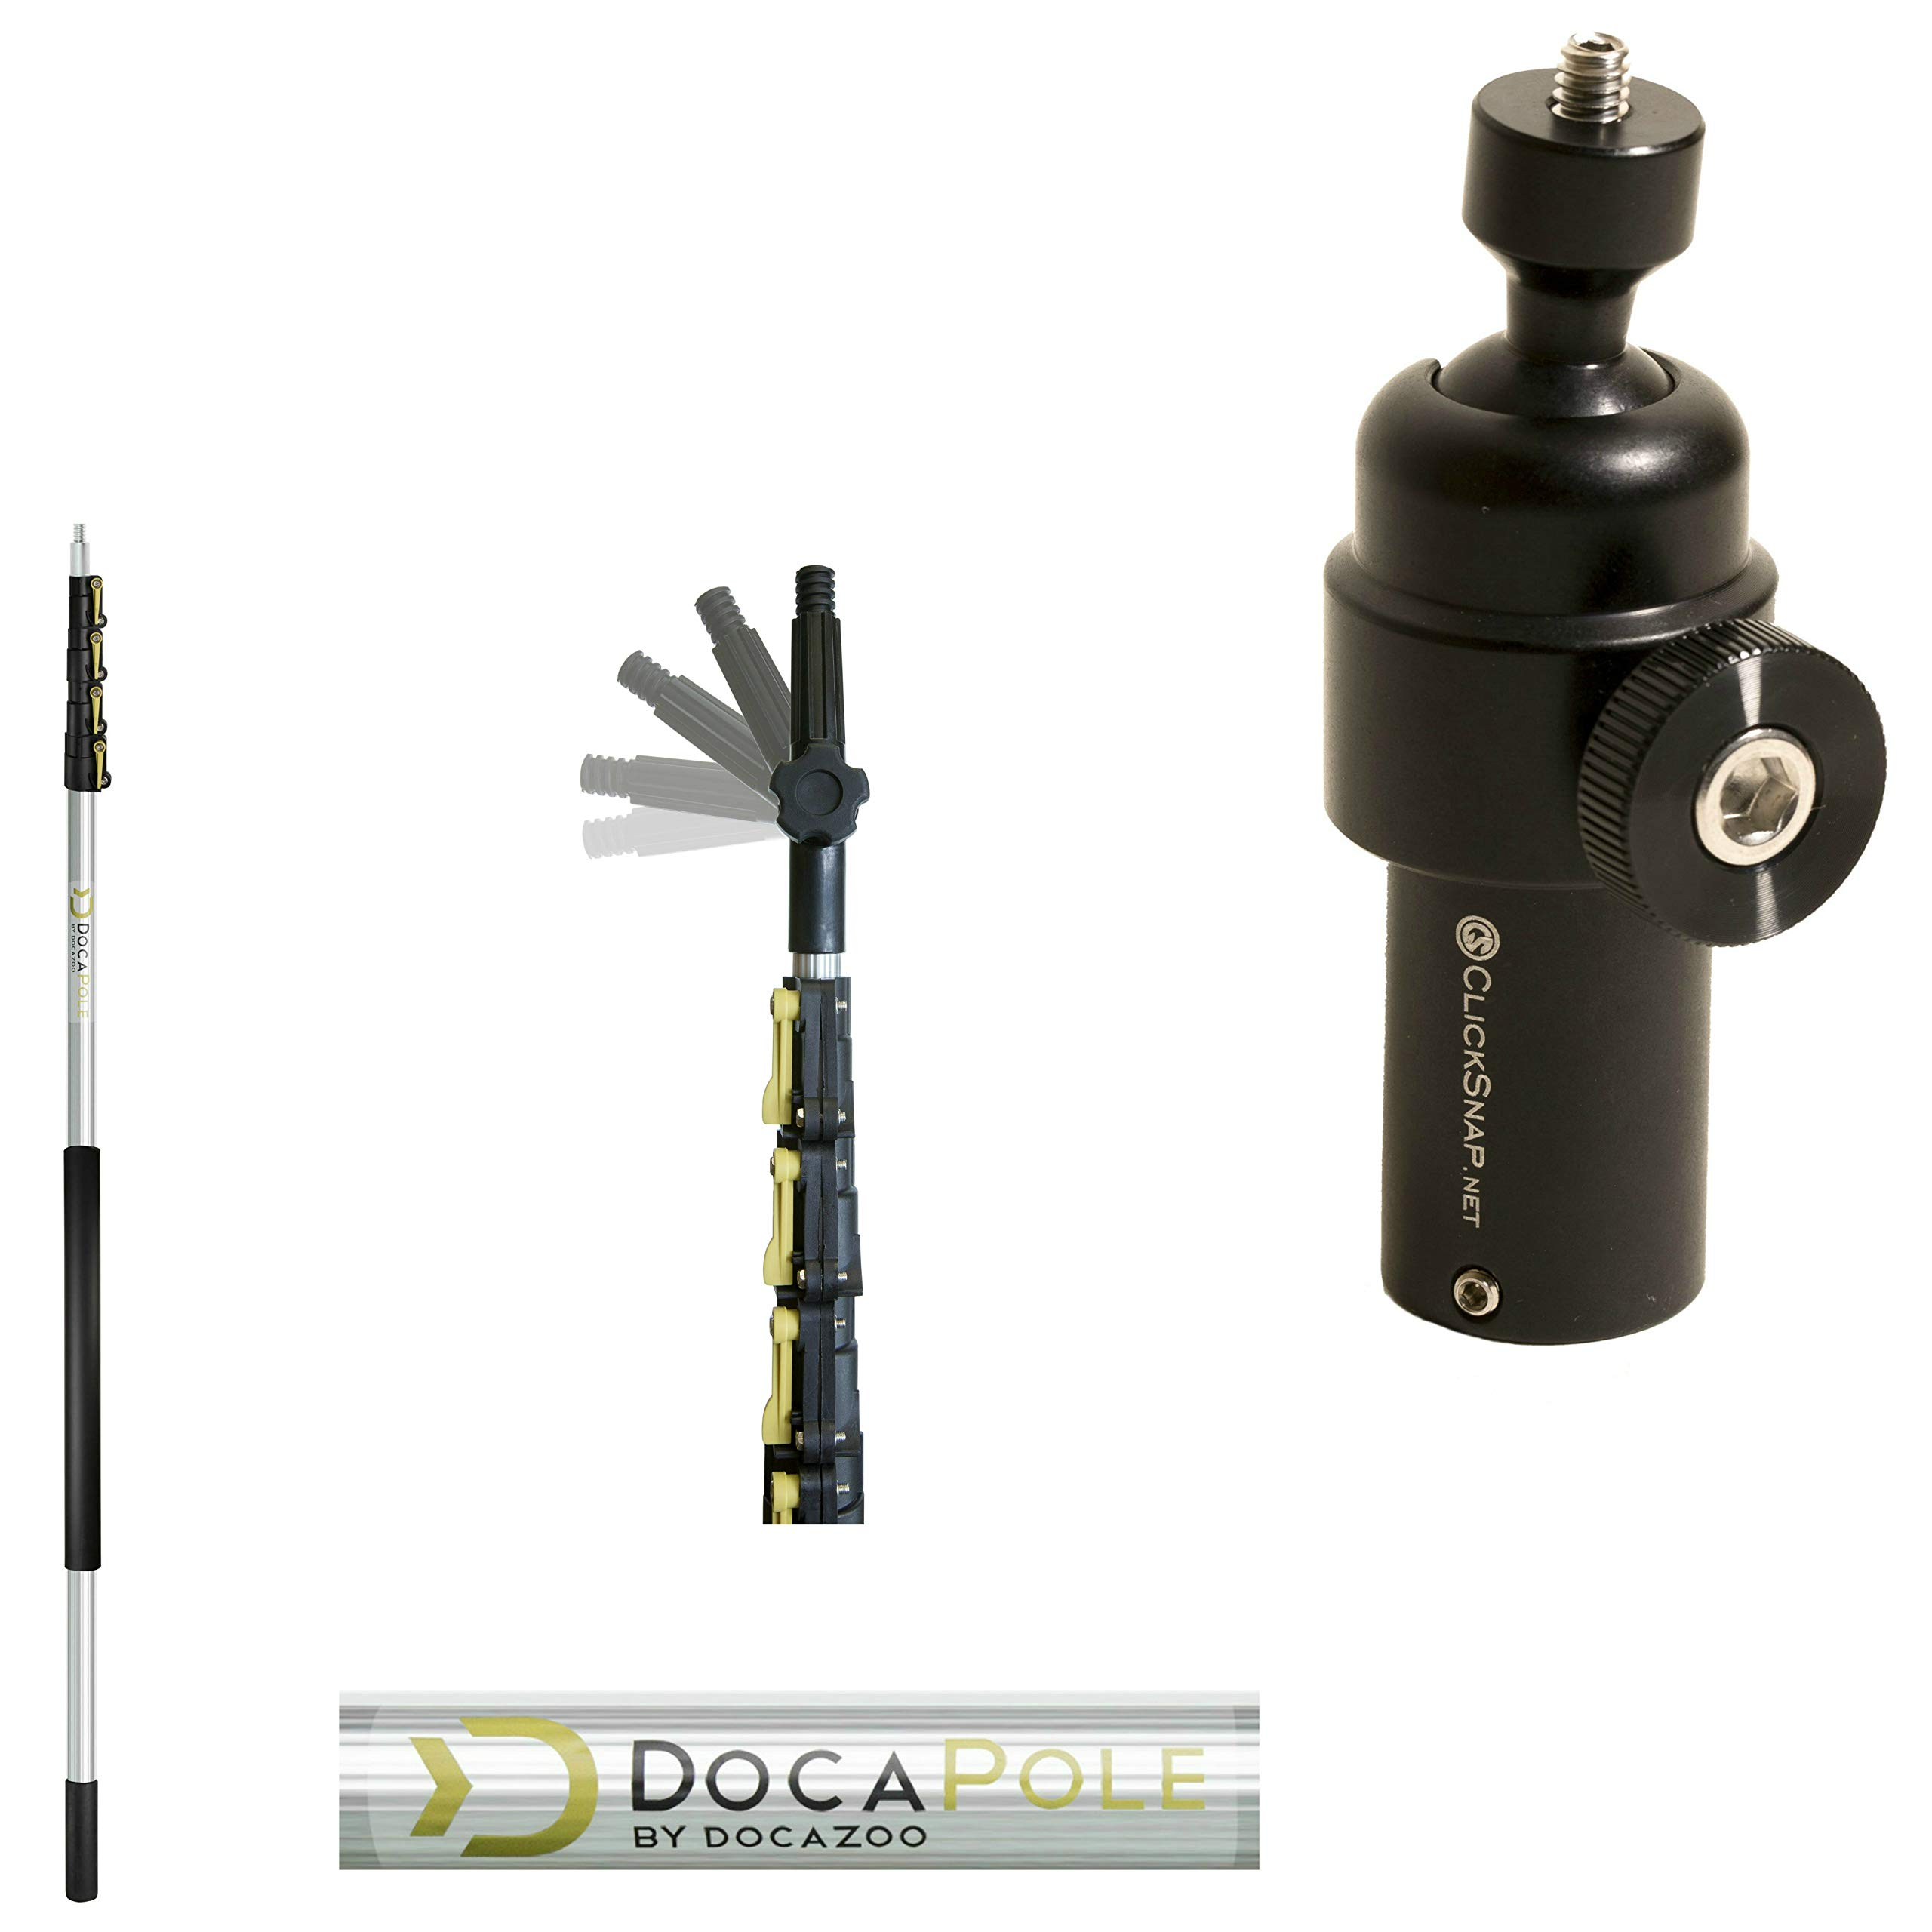 DocaPole 24 Foot Camera Pole - 6-24' Extension Pole + ClickSnap Camera Swivel Adapter for GoPro or Camera   Provides Up to 30 Feet of Reach   The Ultimate Painters Pole Camera Adapter and Camera Pole